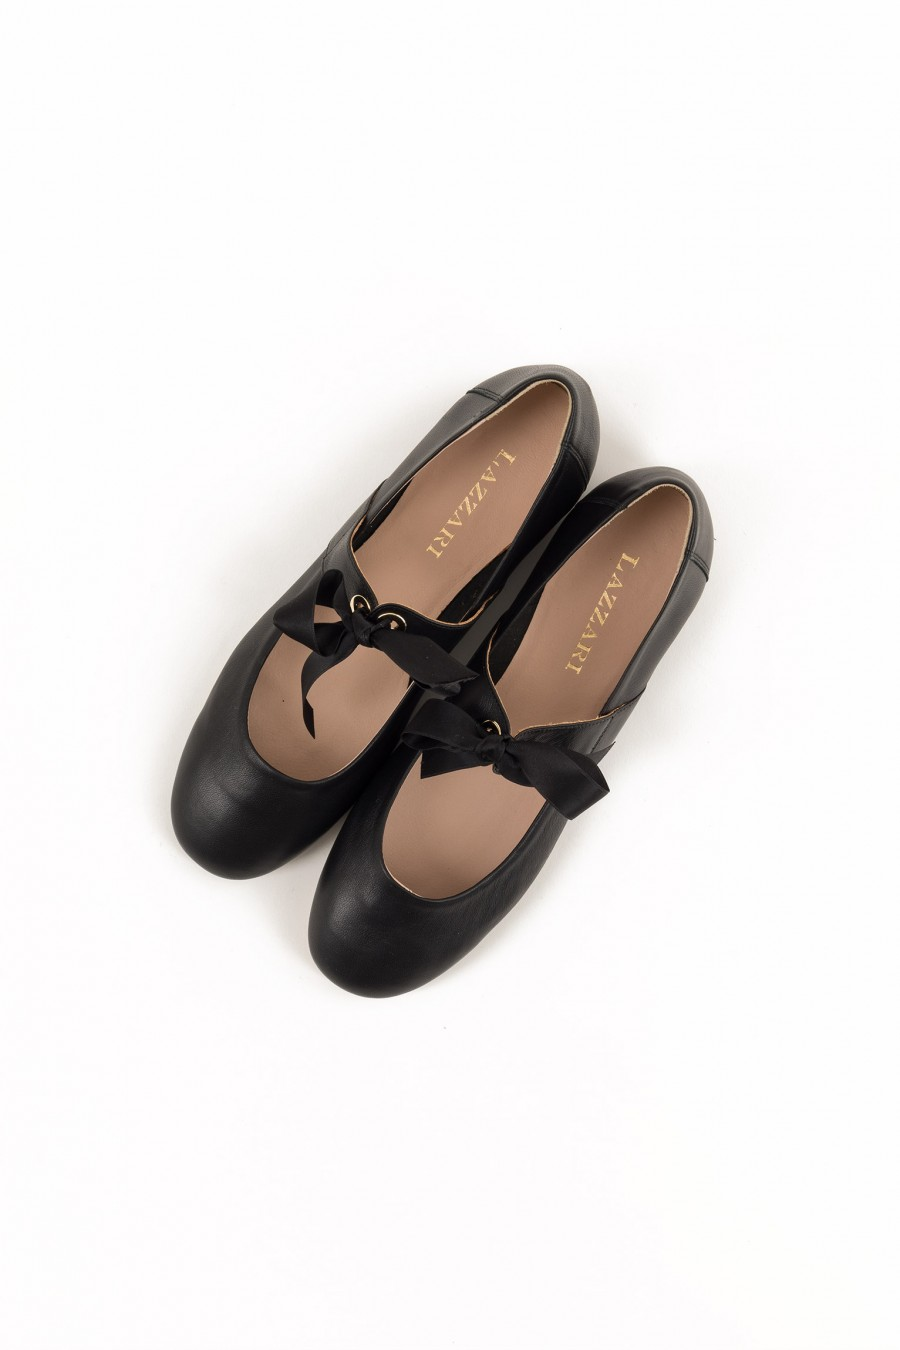 Black flat shoes with bow